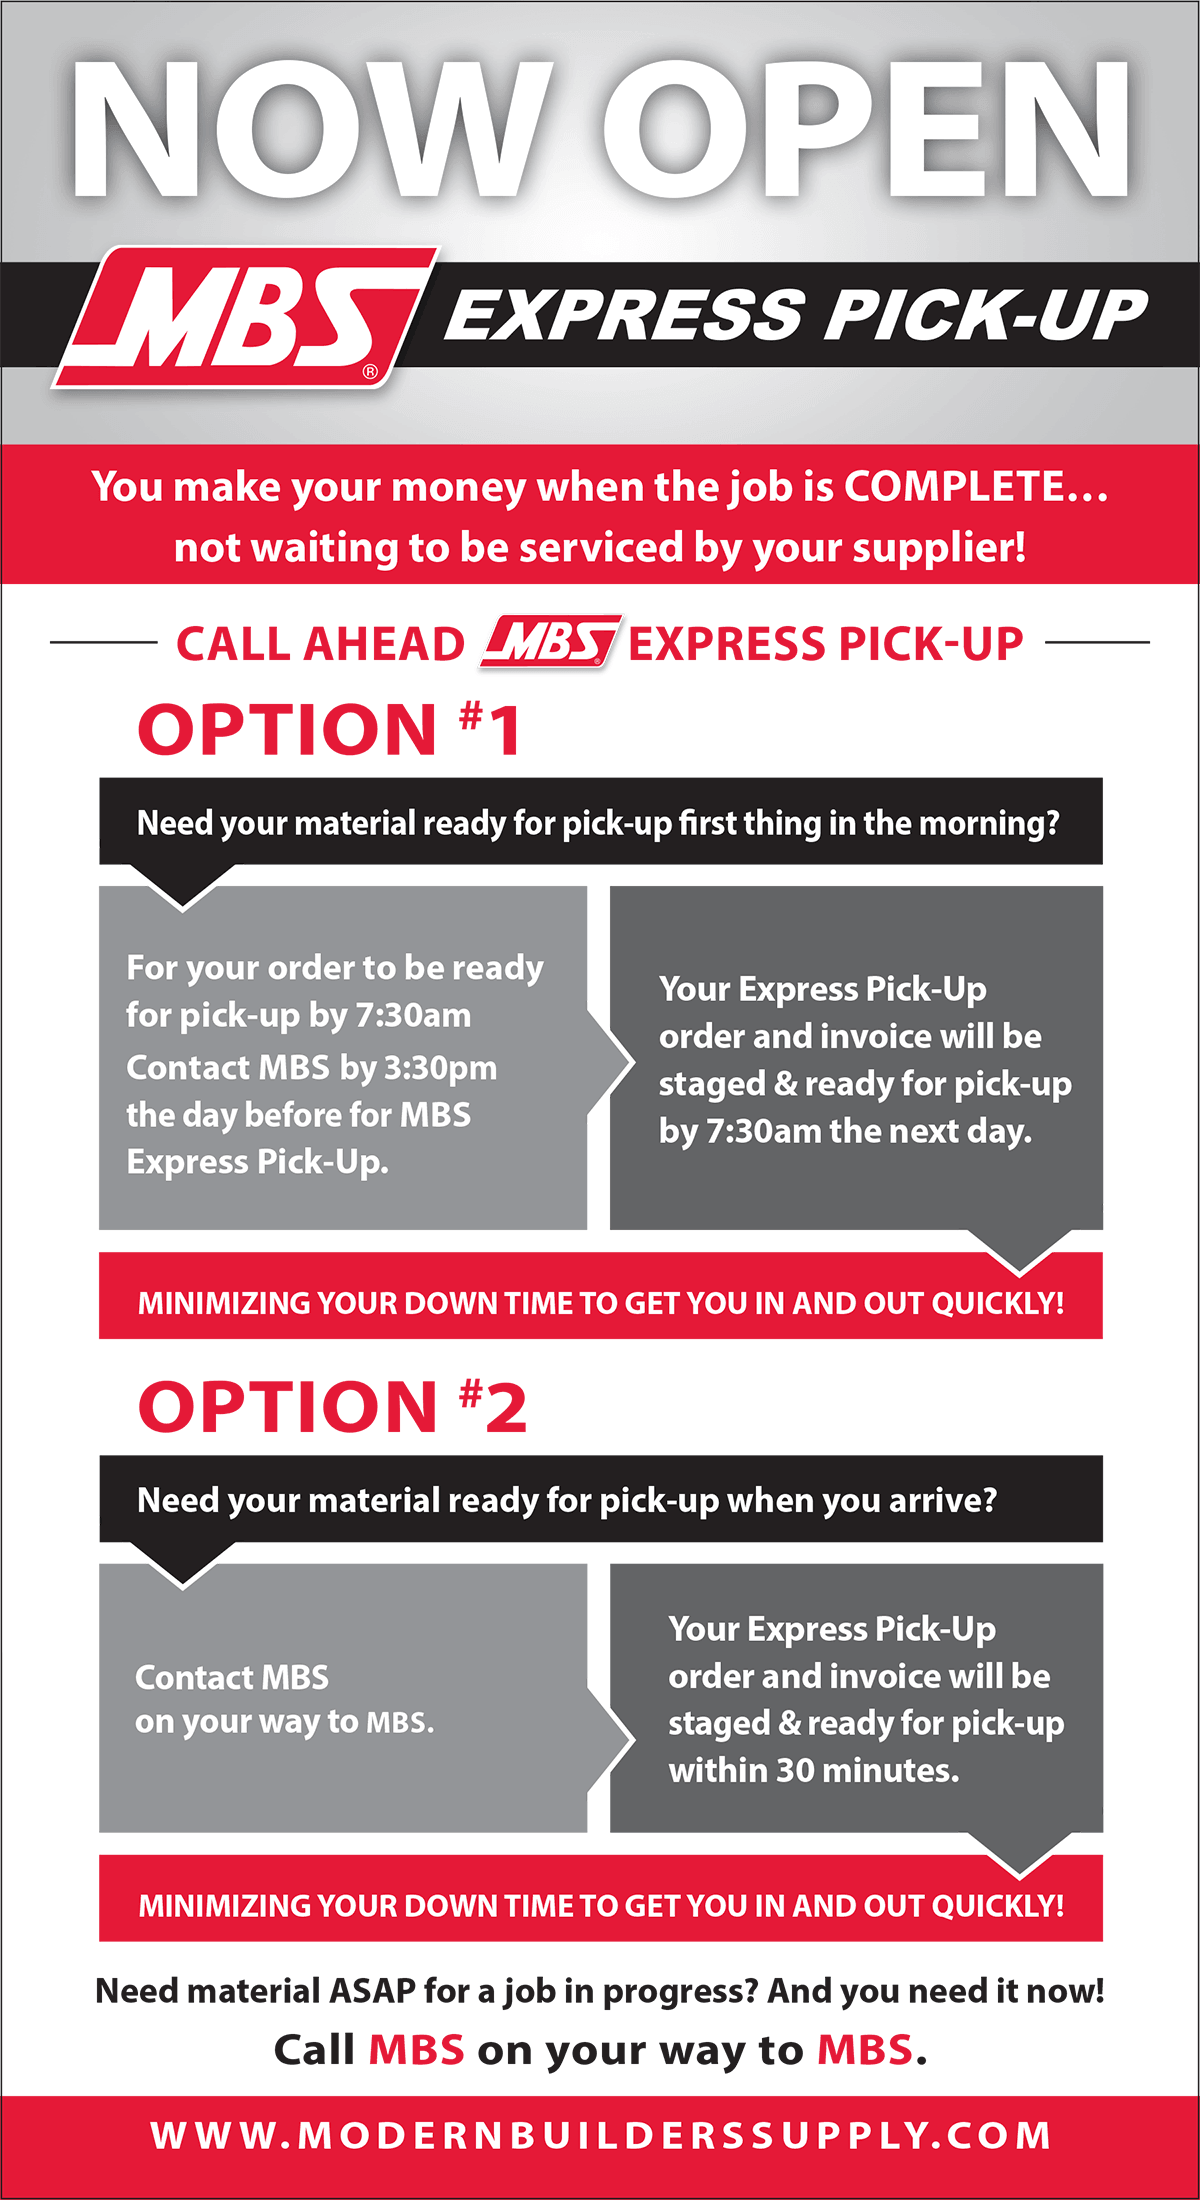 mbs express pick up then you will just go to the mbs express pick up service door our express pick up service team will respond rapidly to your express pick up order